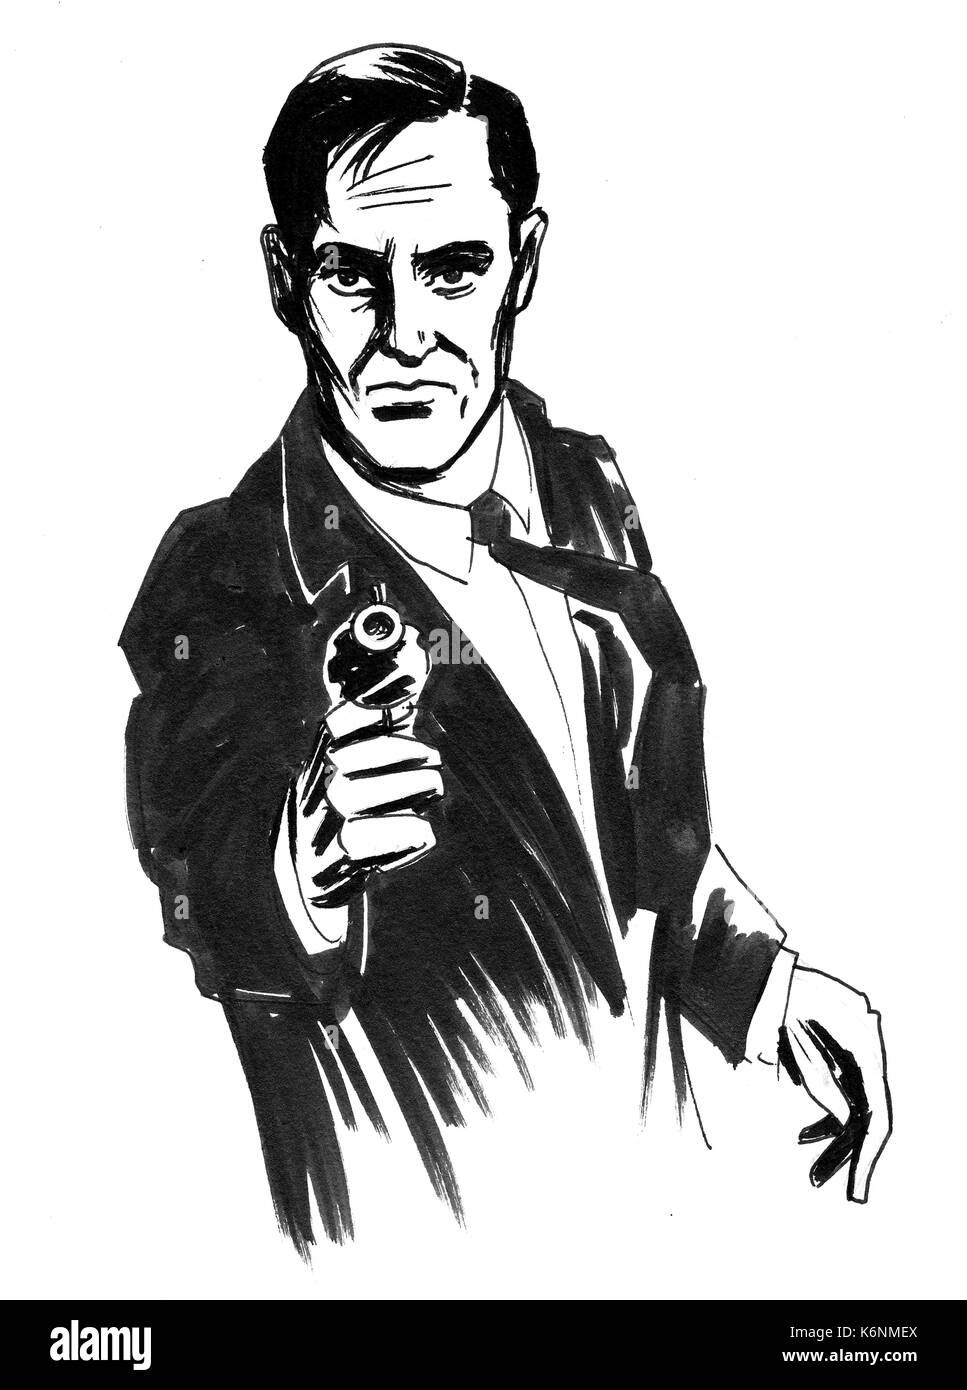 Retro styled drawing of a man with a gun